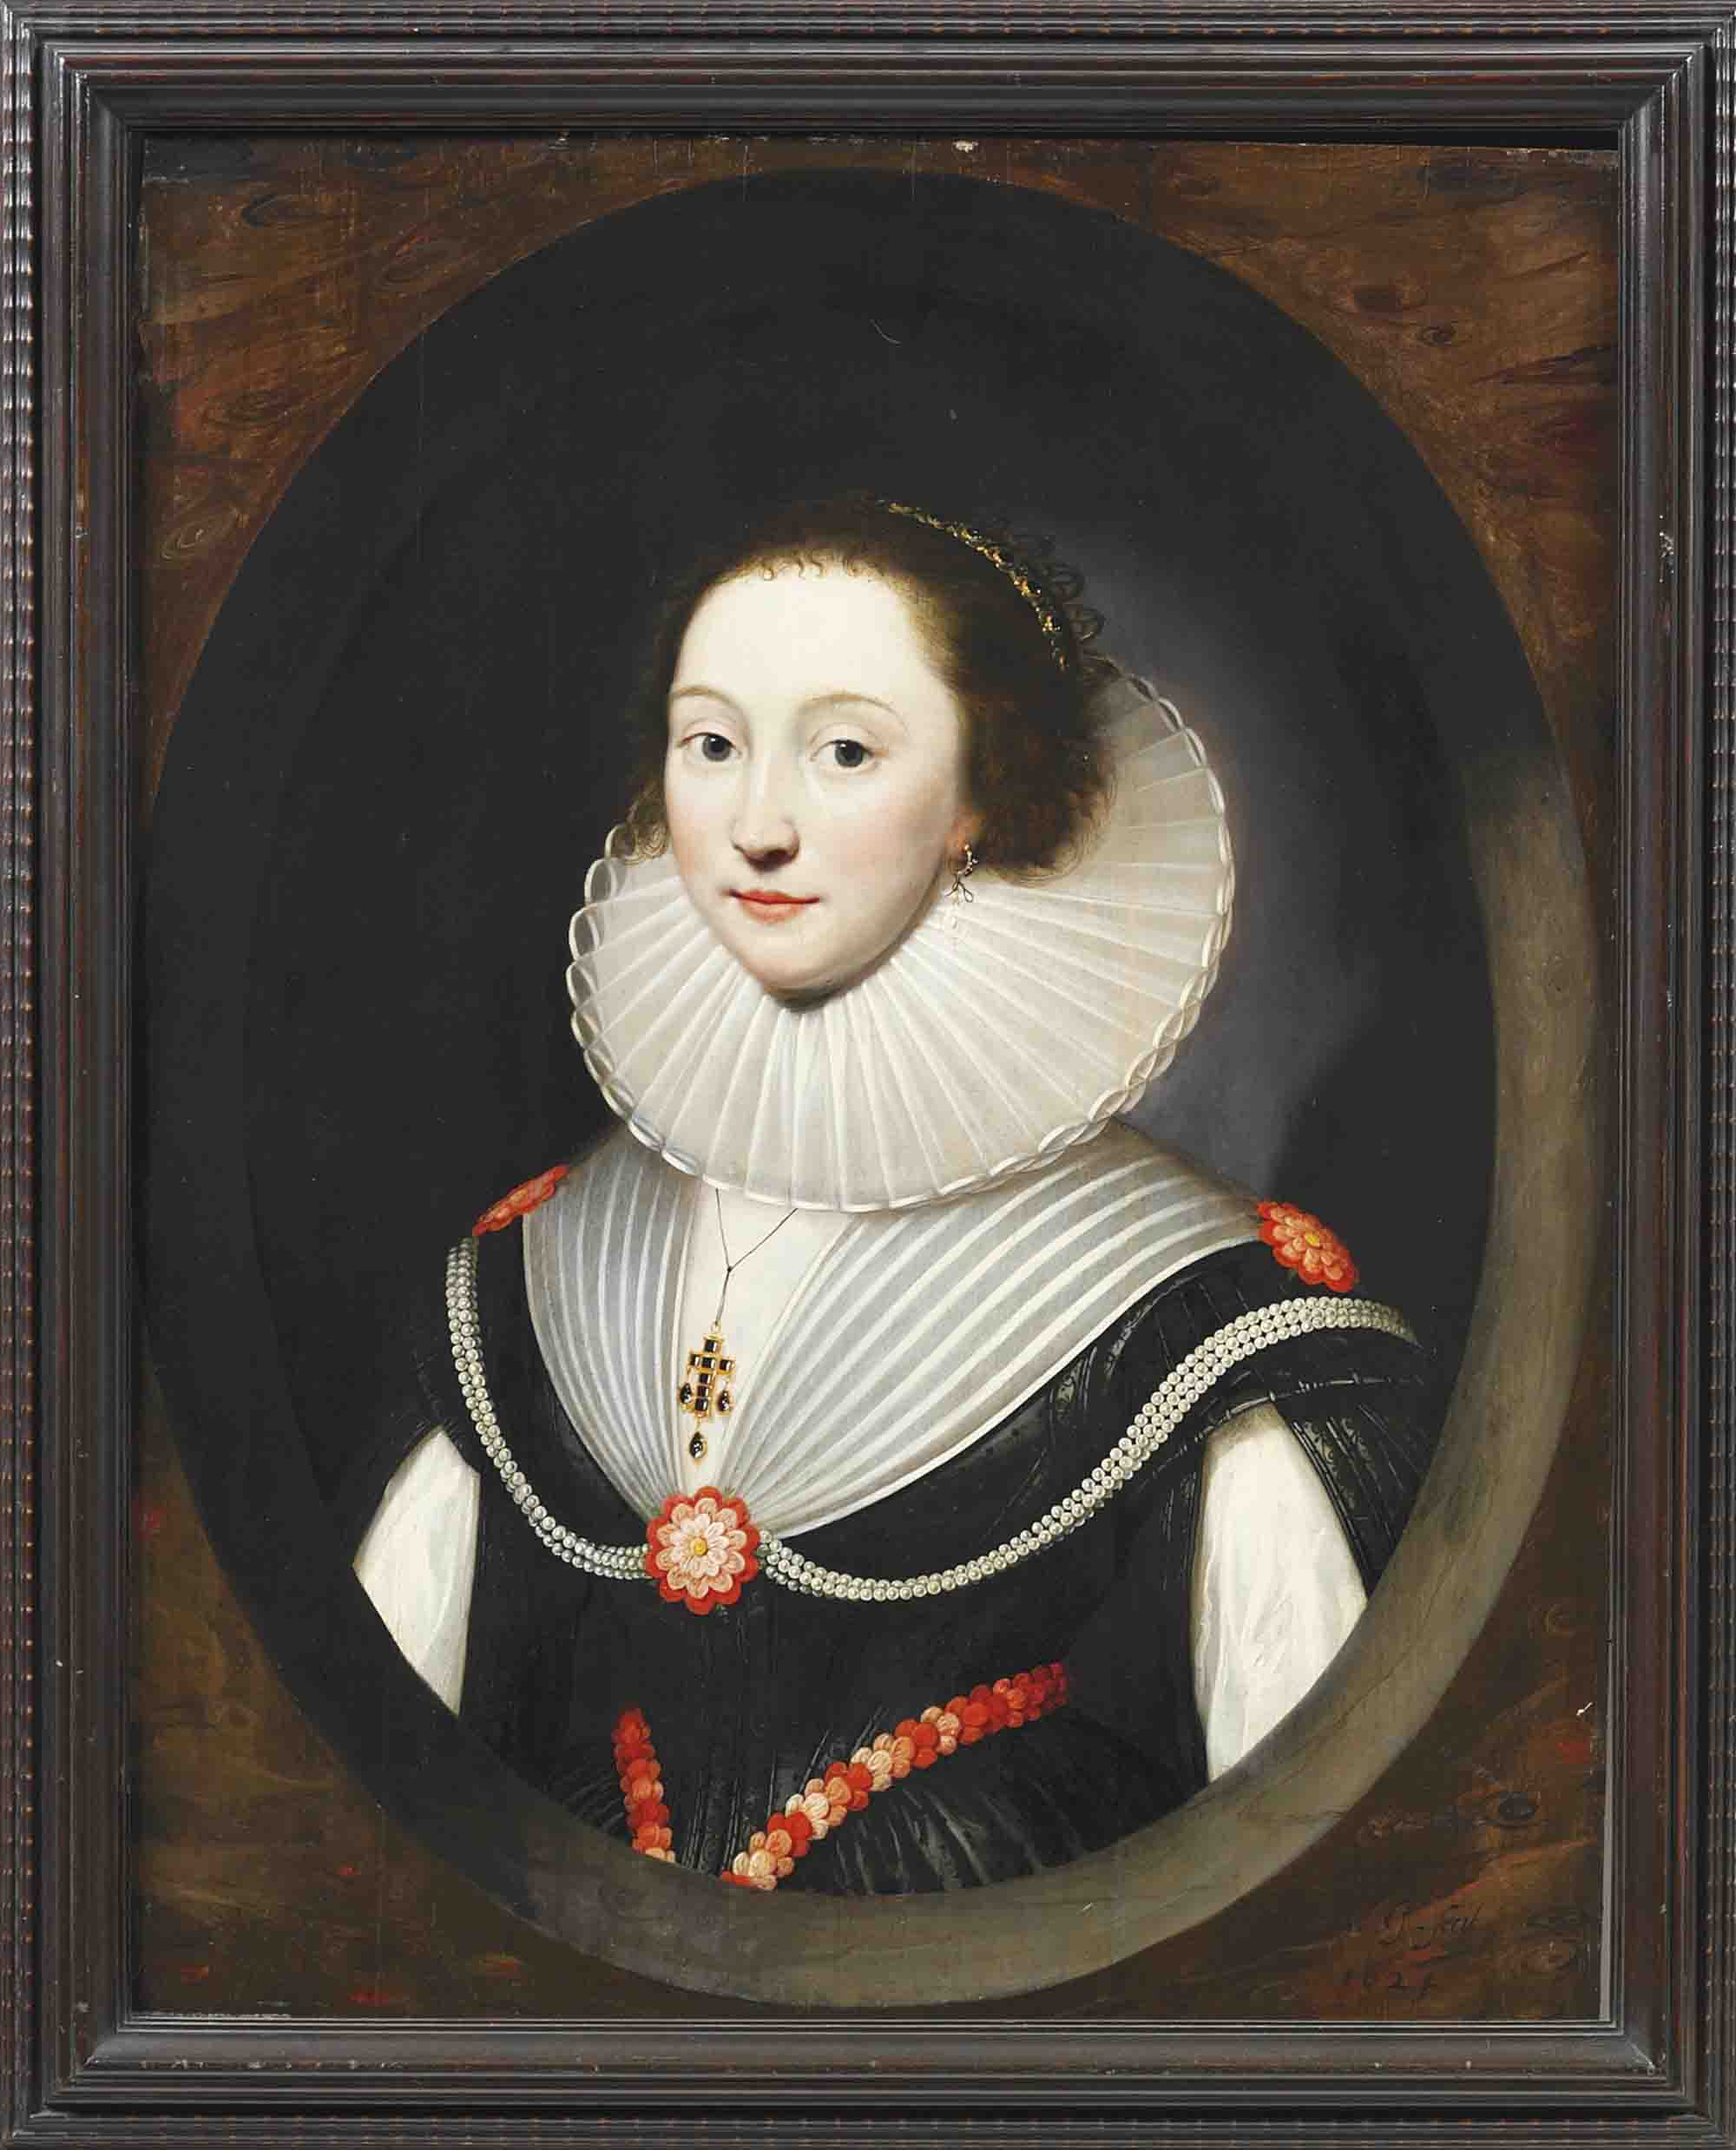 Portrait of a lady, half-length, in a black dress and white ruff and jewelled pendant, in a feigned marbled oval